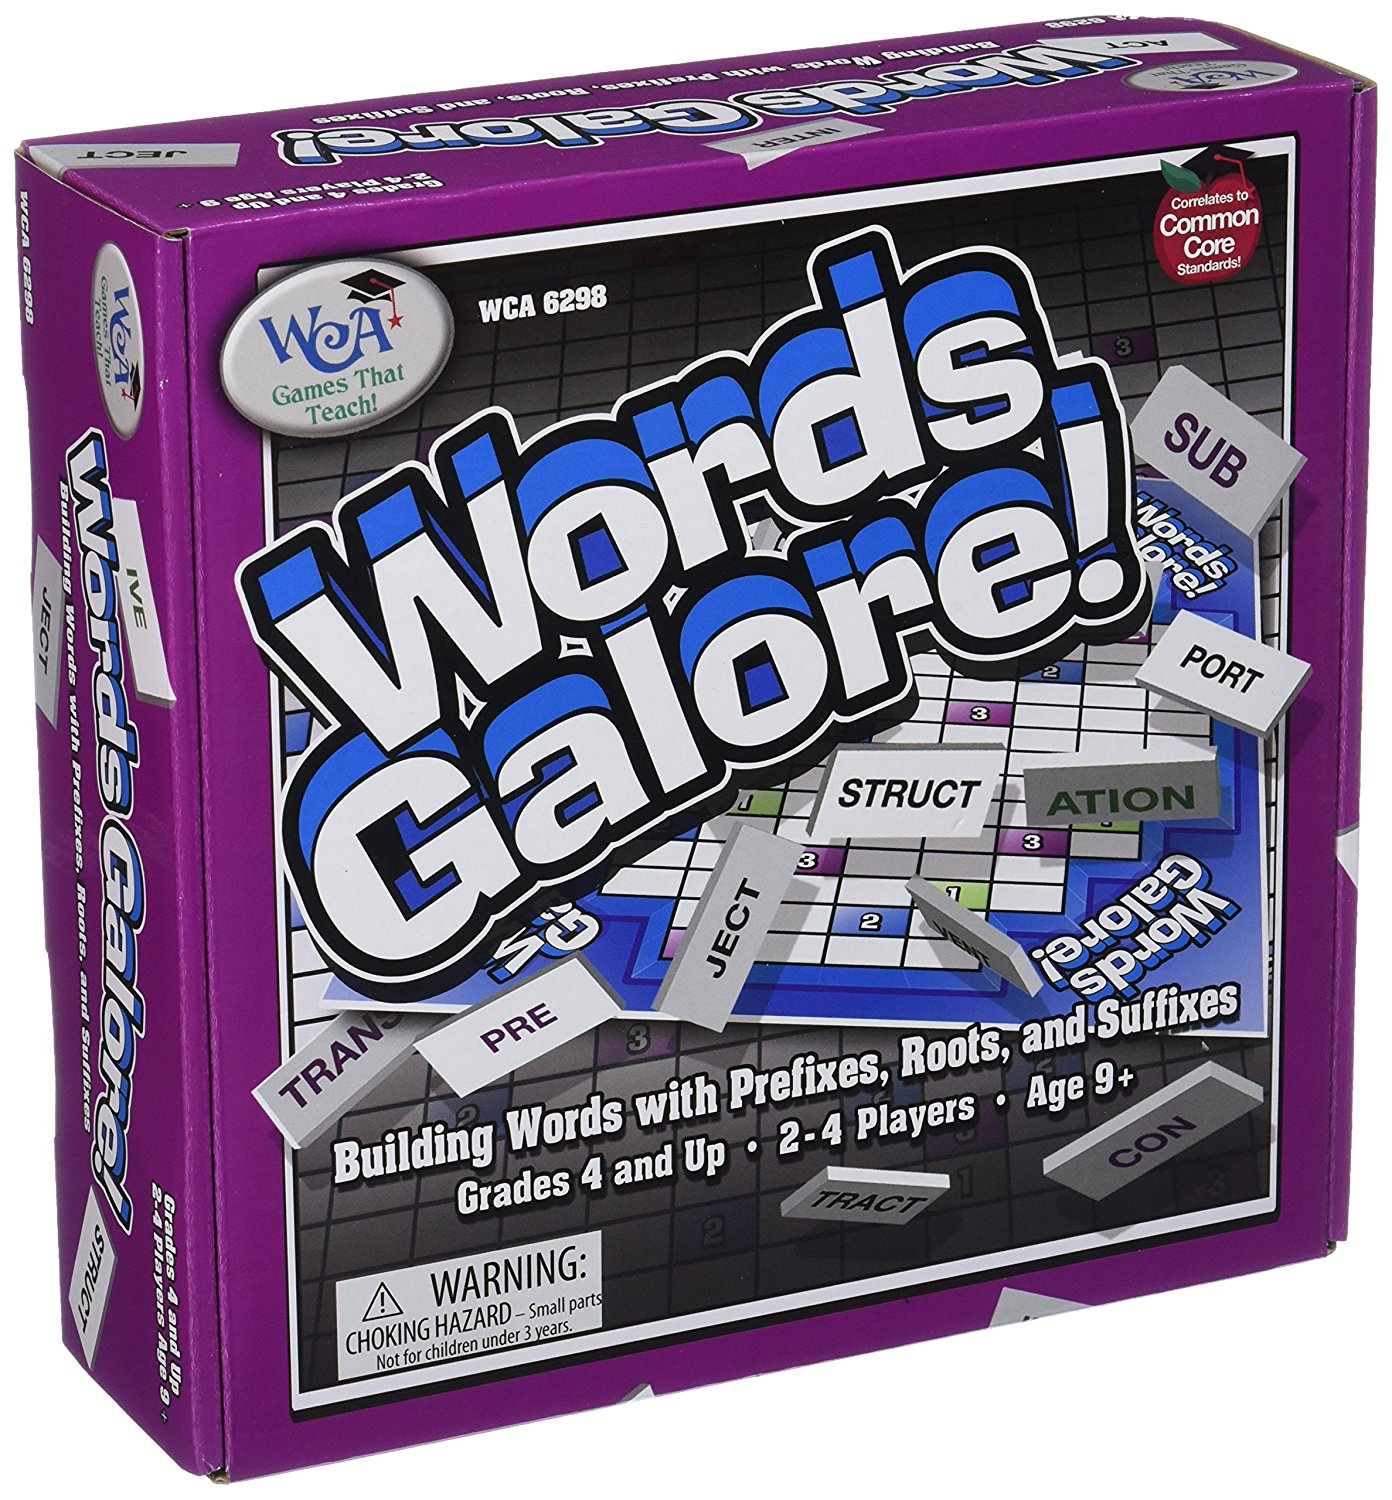 WCA6298 - WORDS GALORE